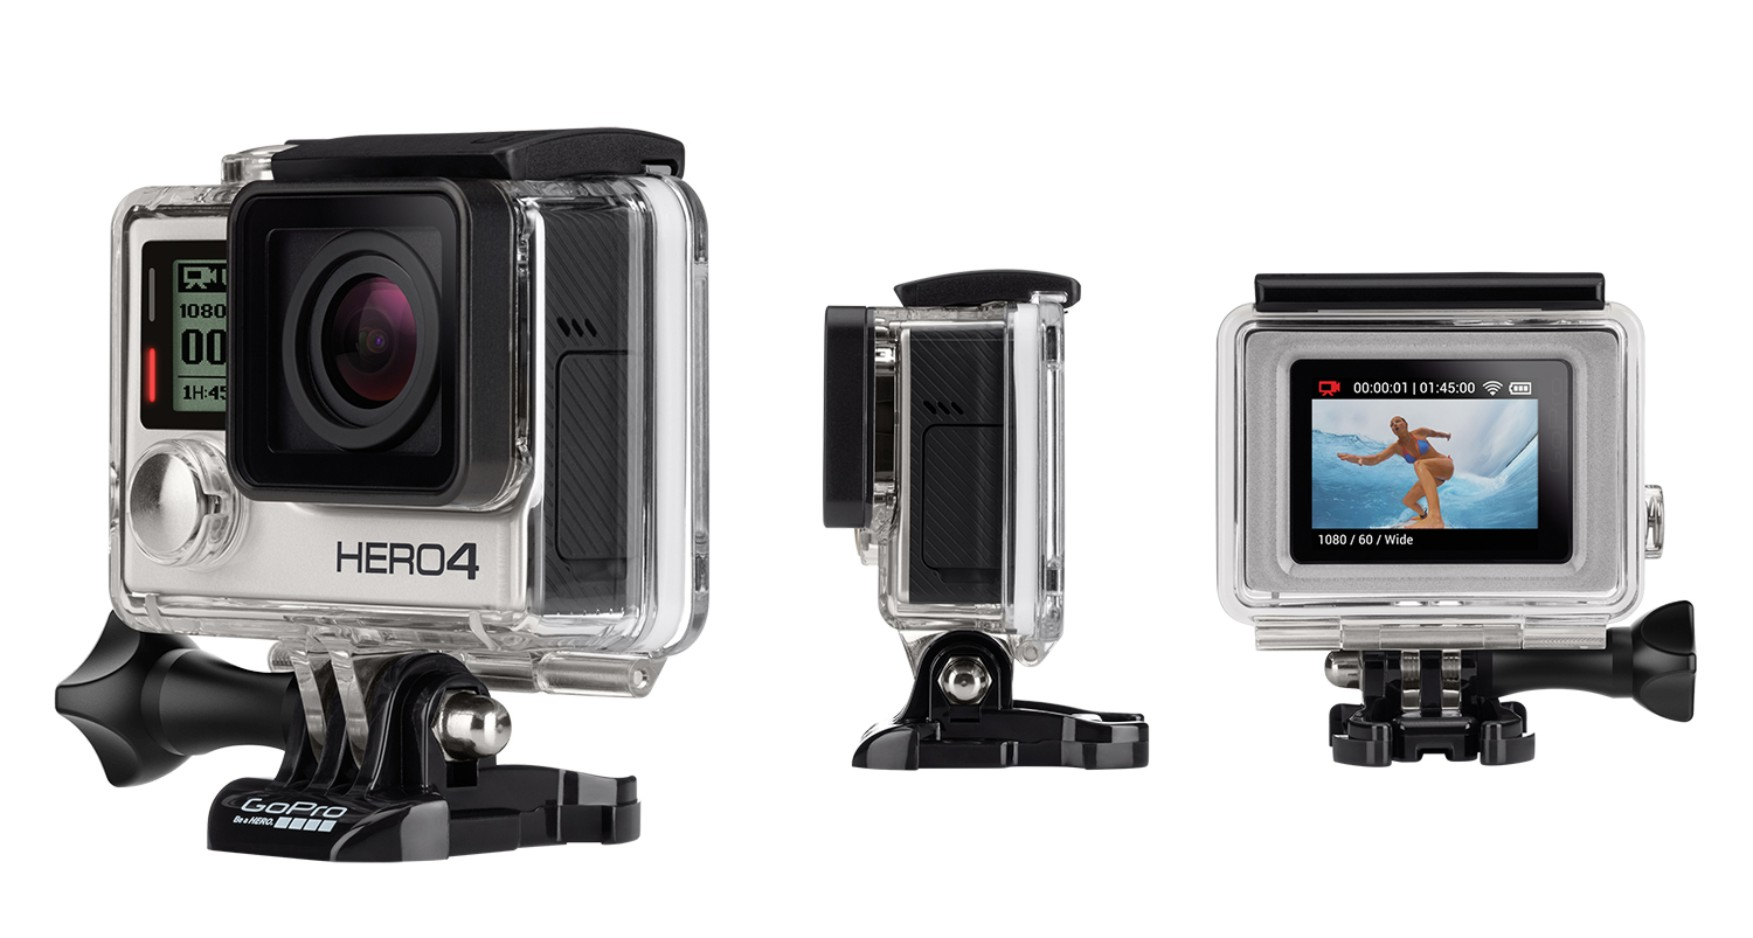 The GoPro Hero4 Silver edition is here